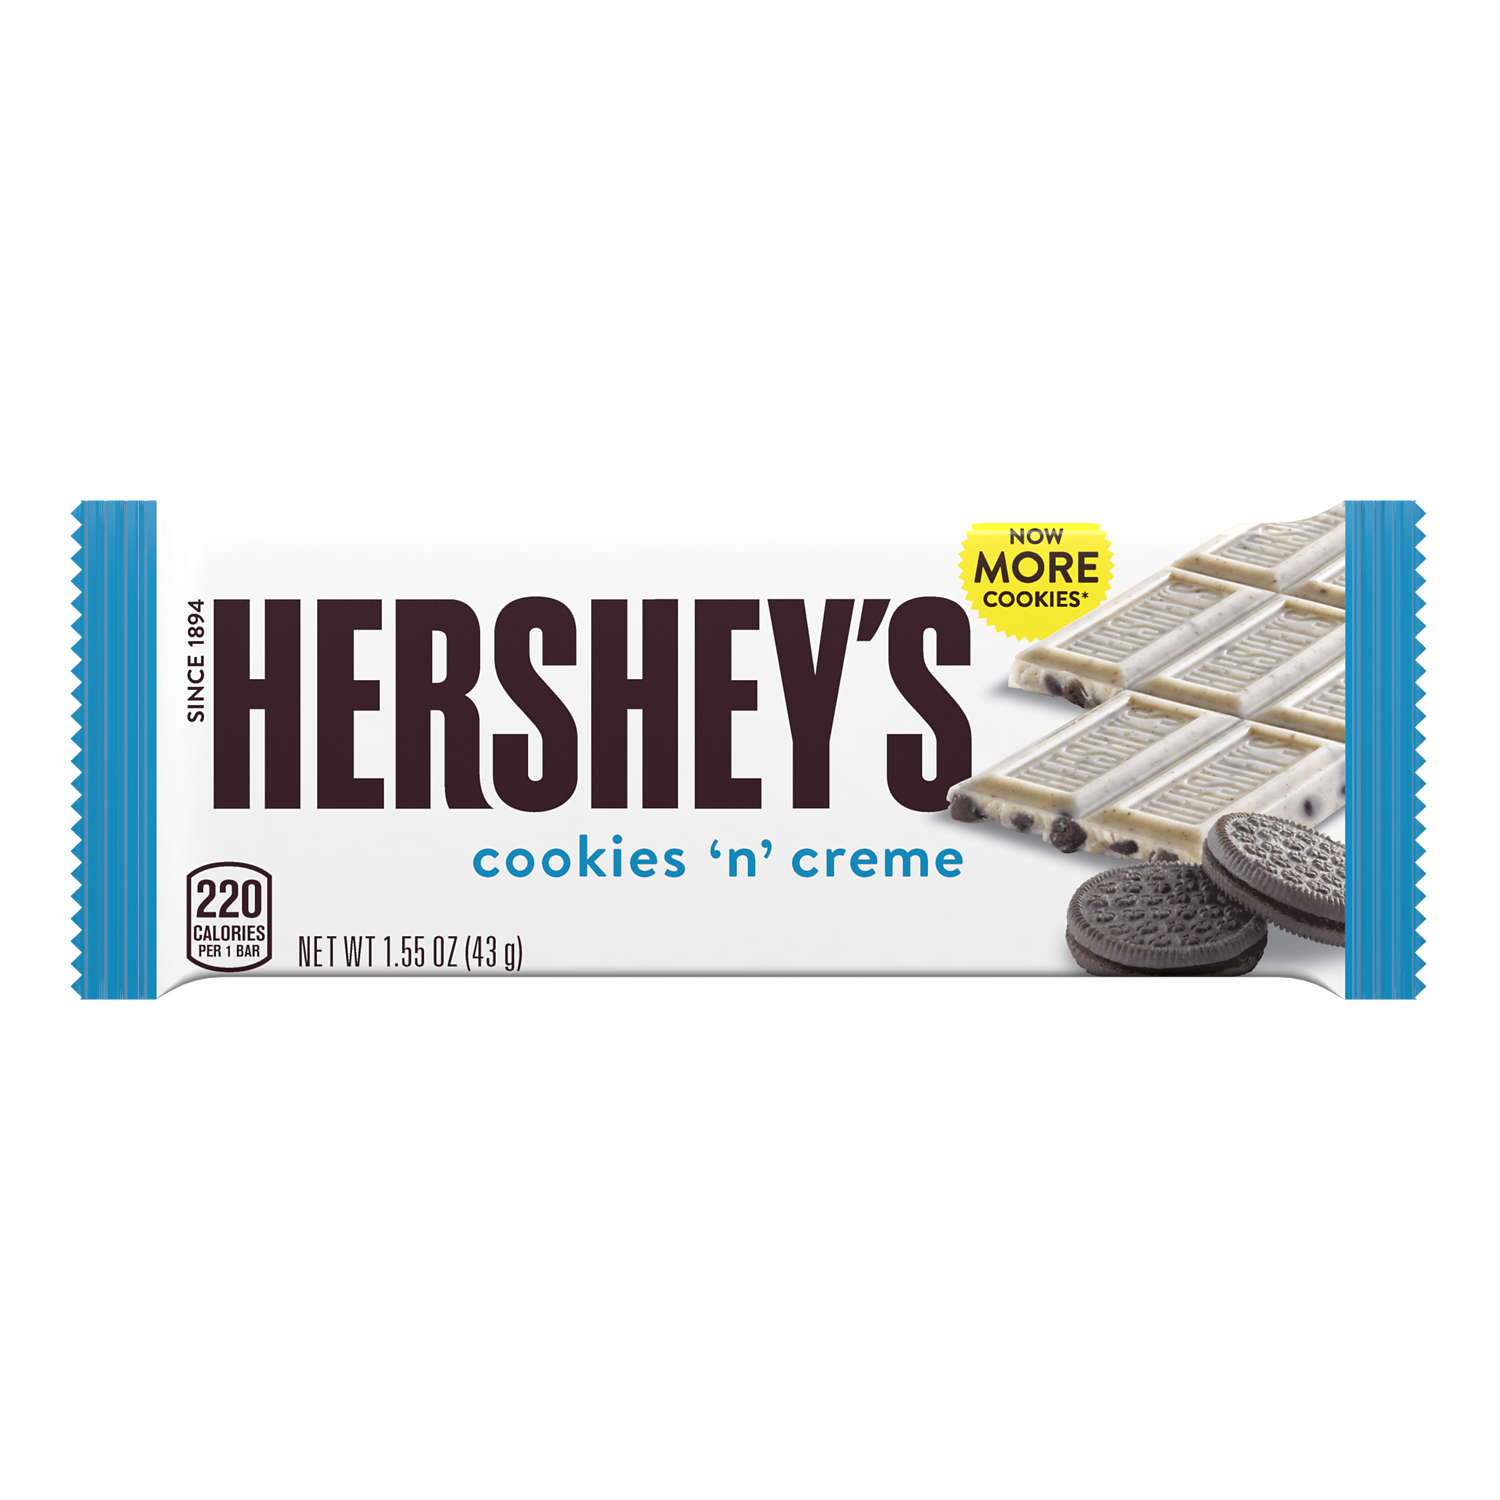 HERSHEY'S COOKIES 'N' CREME Candy Bar, 1.55 oz - Front of Package